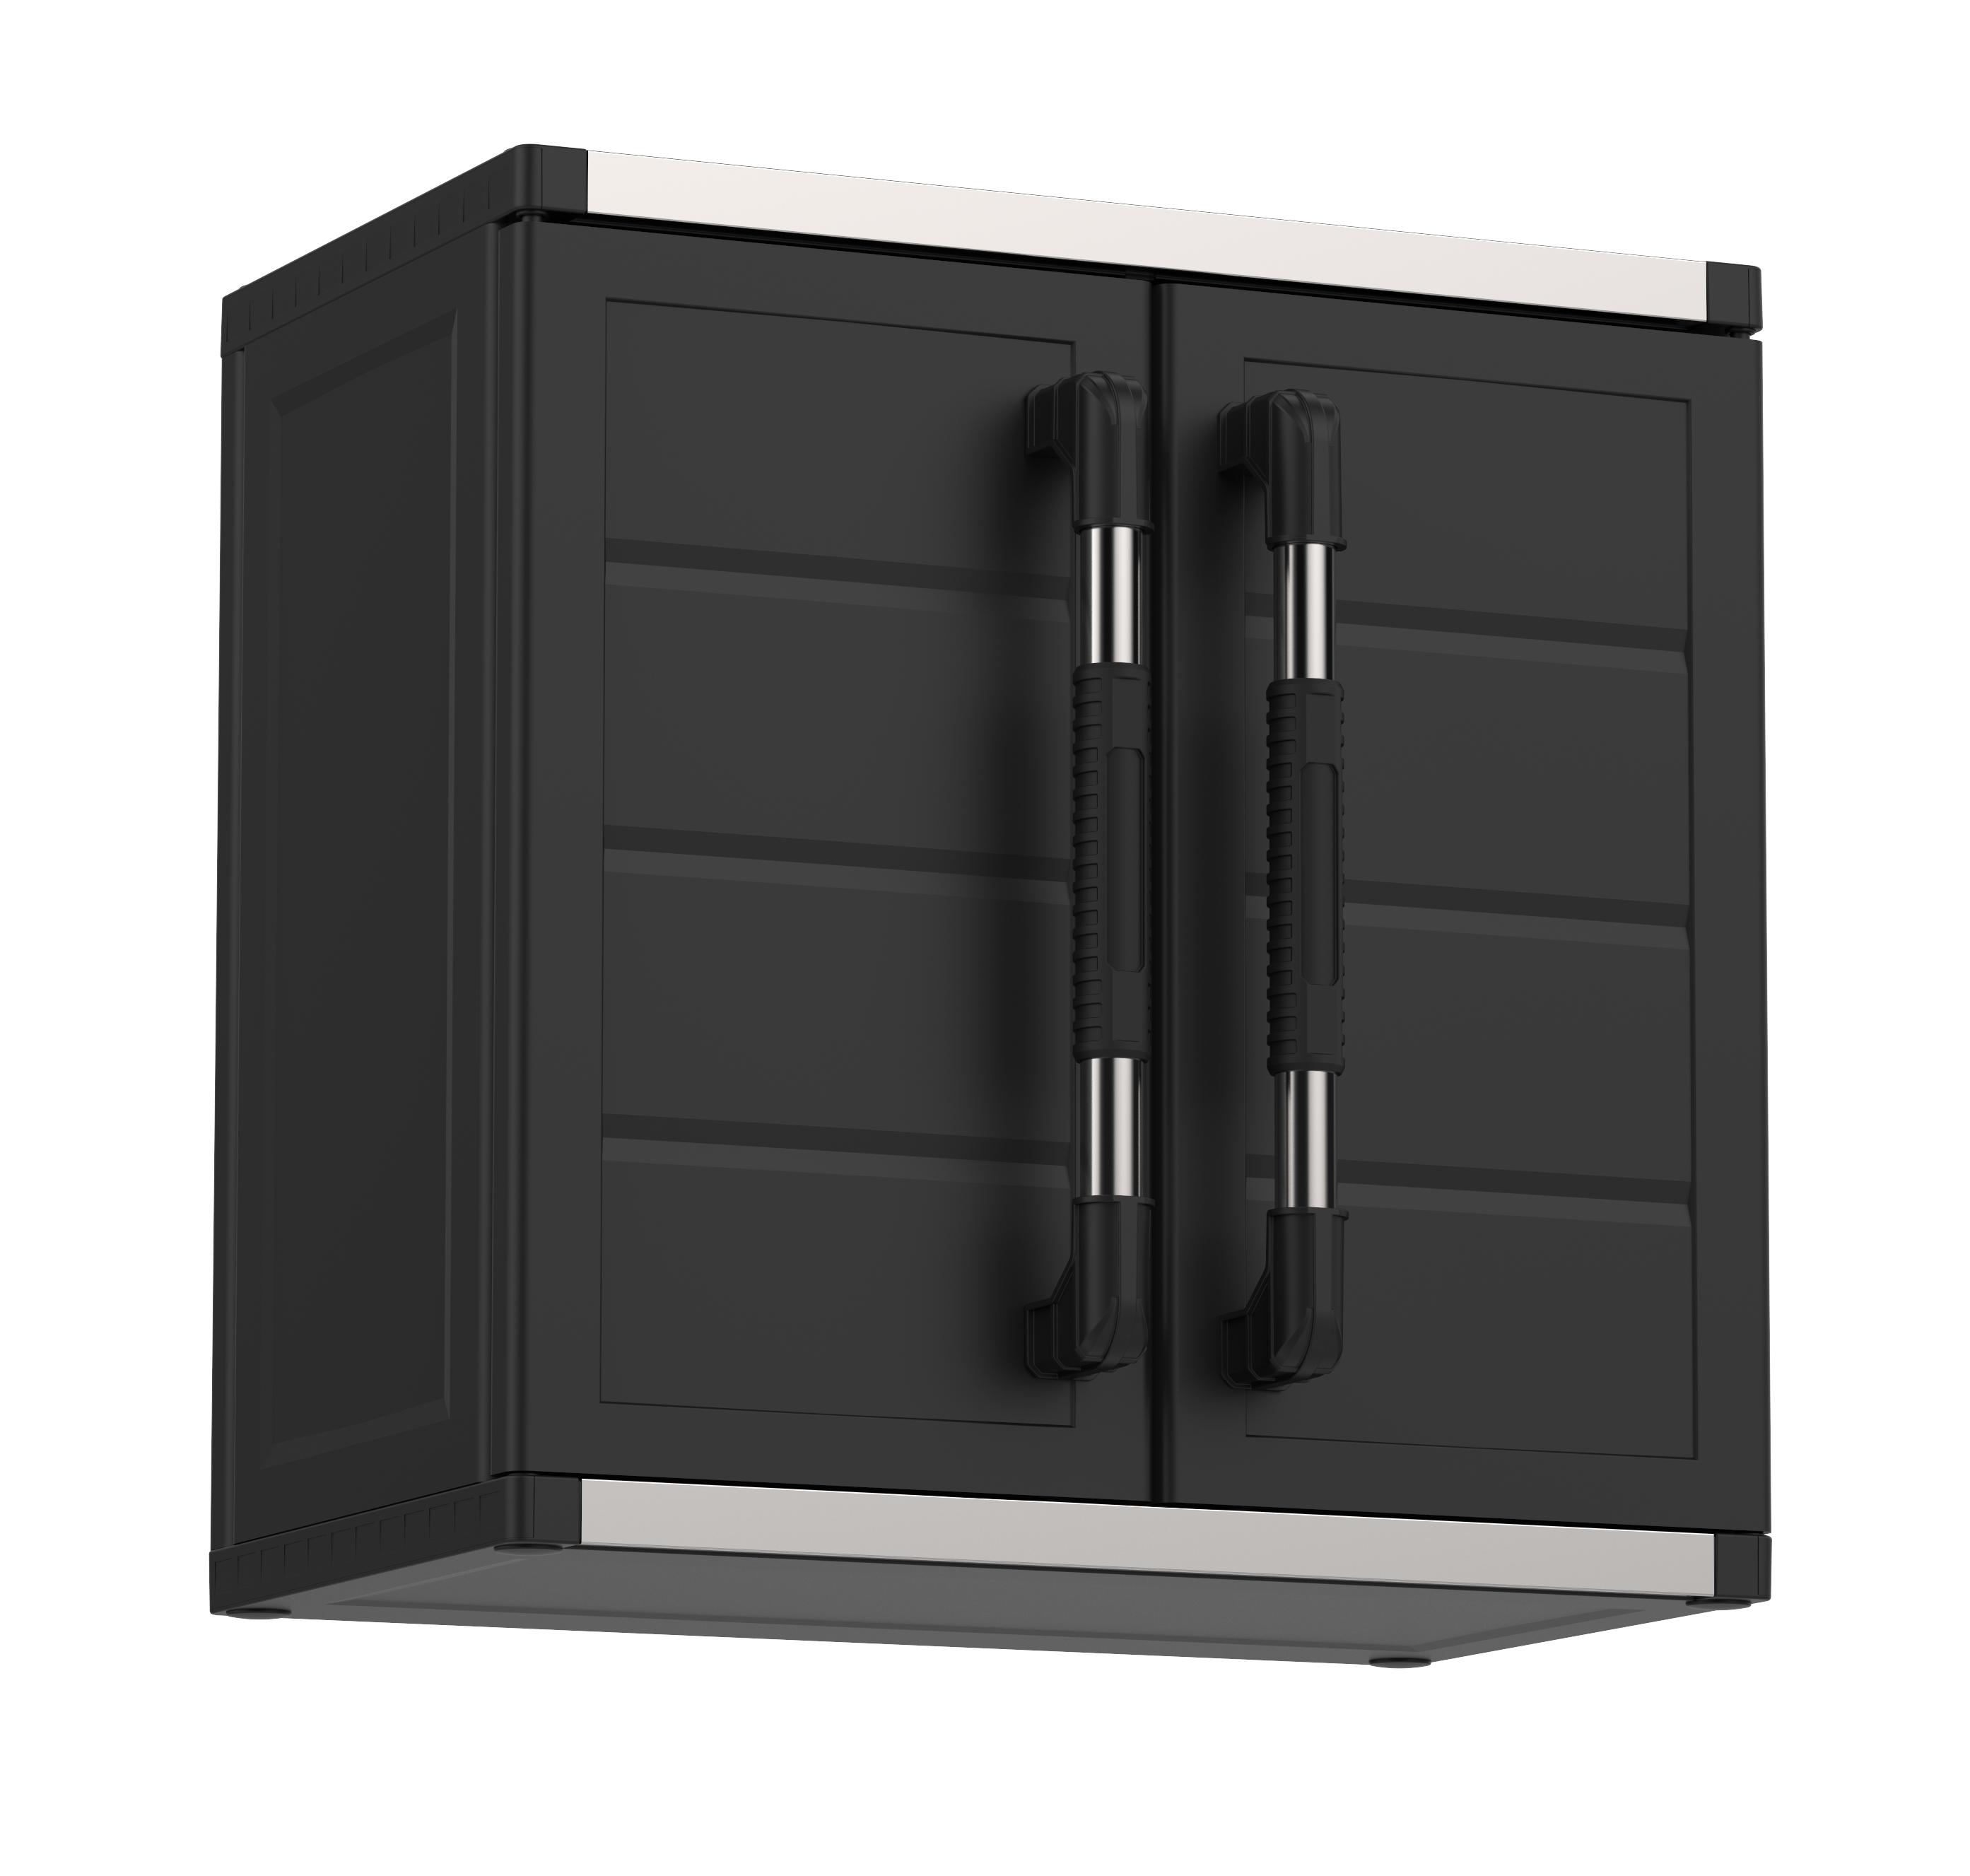 Product Image Keter XL Pro Hanging Wall Cabinet